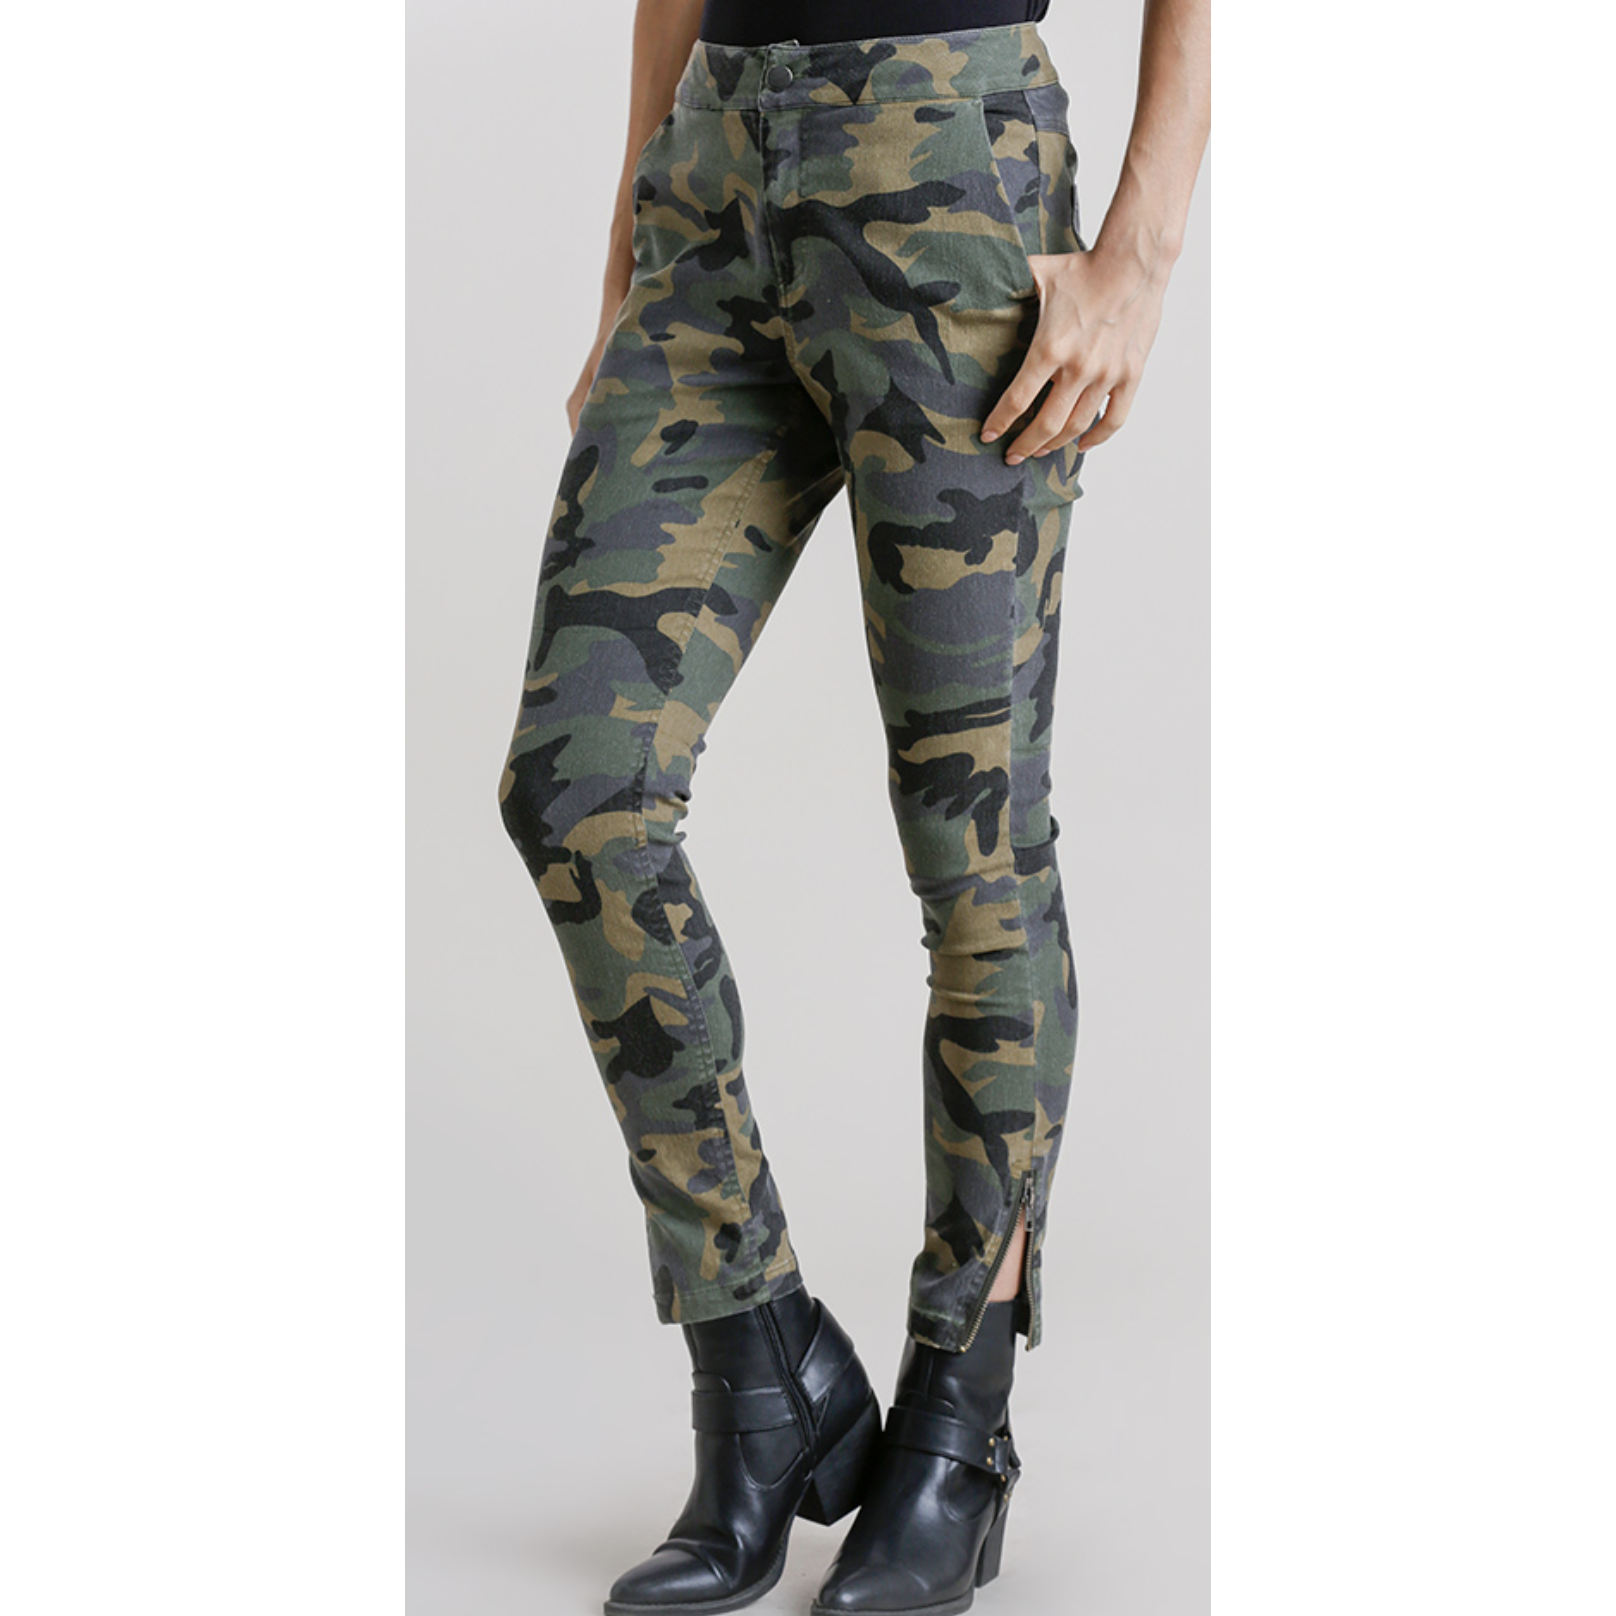 Ankle Zipper Detail Camo Print Pants W/ Side & Back Pockets